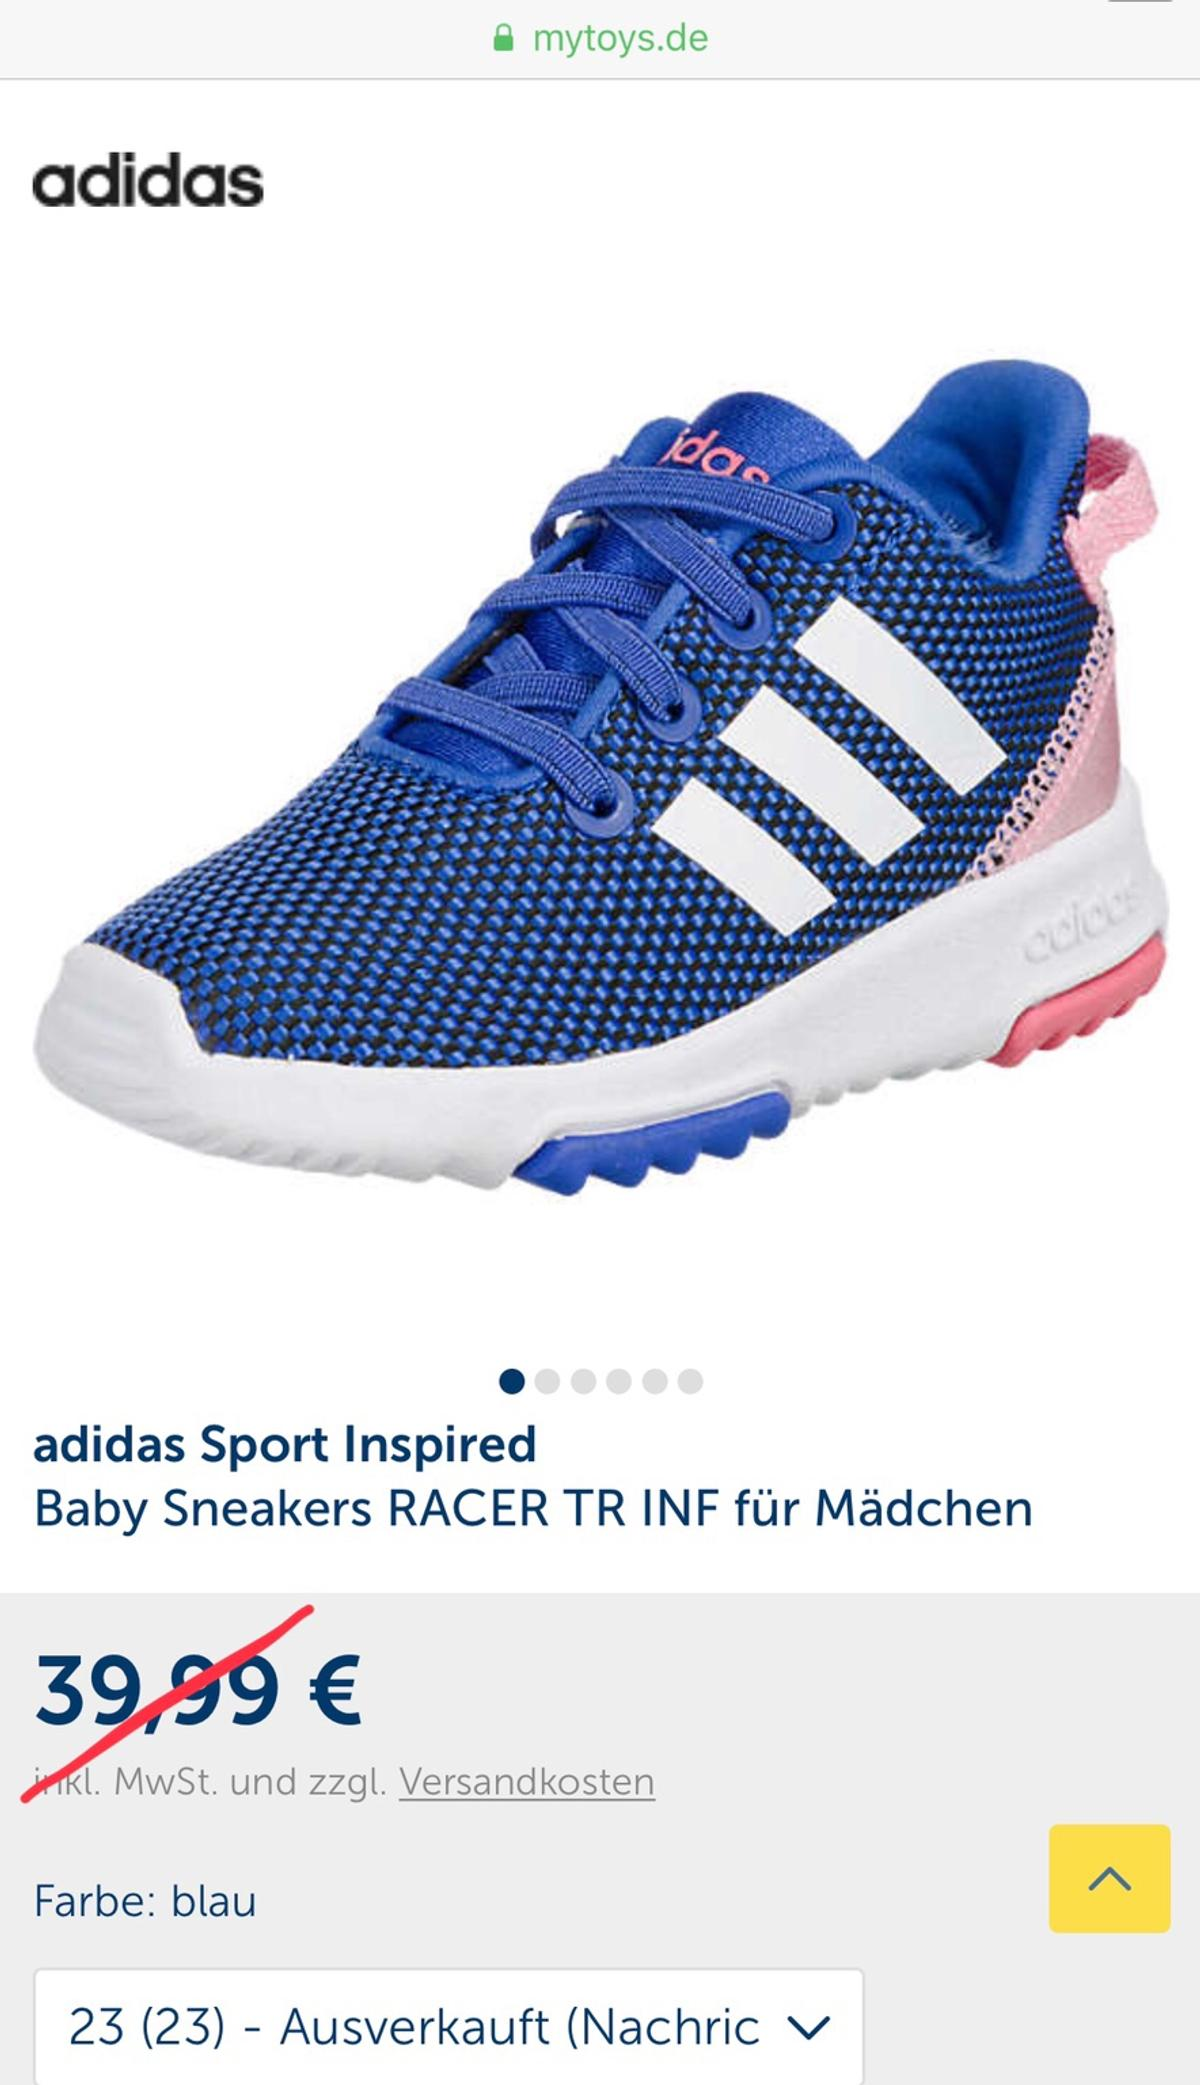 adidas Sport Inspired, Baby Sneakers RACER TR INF für